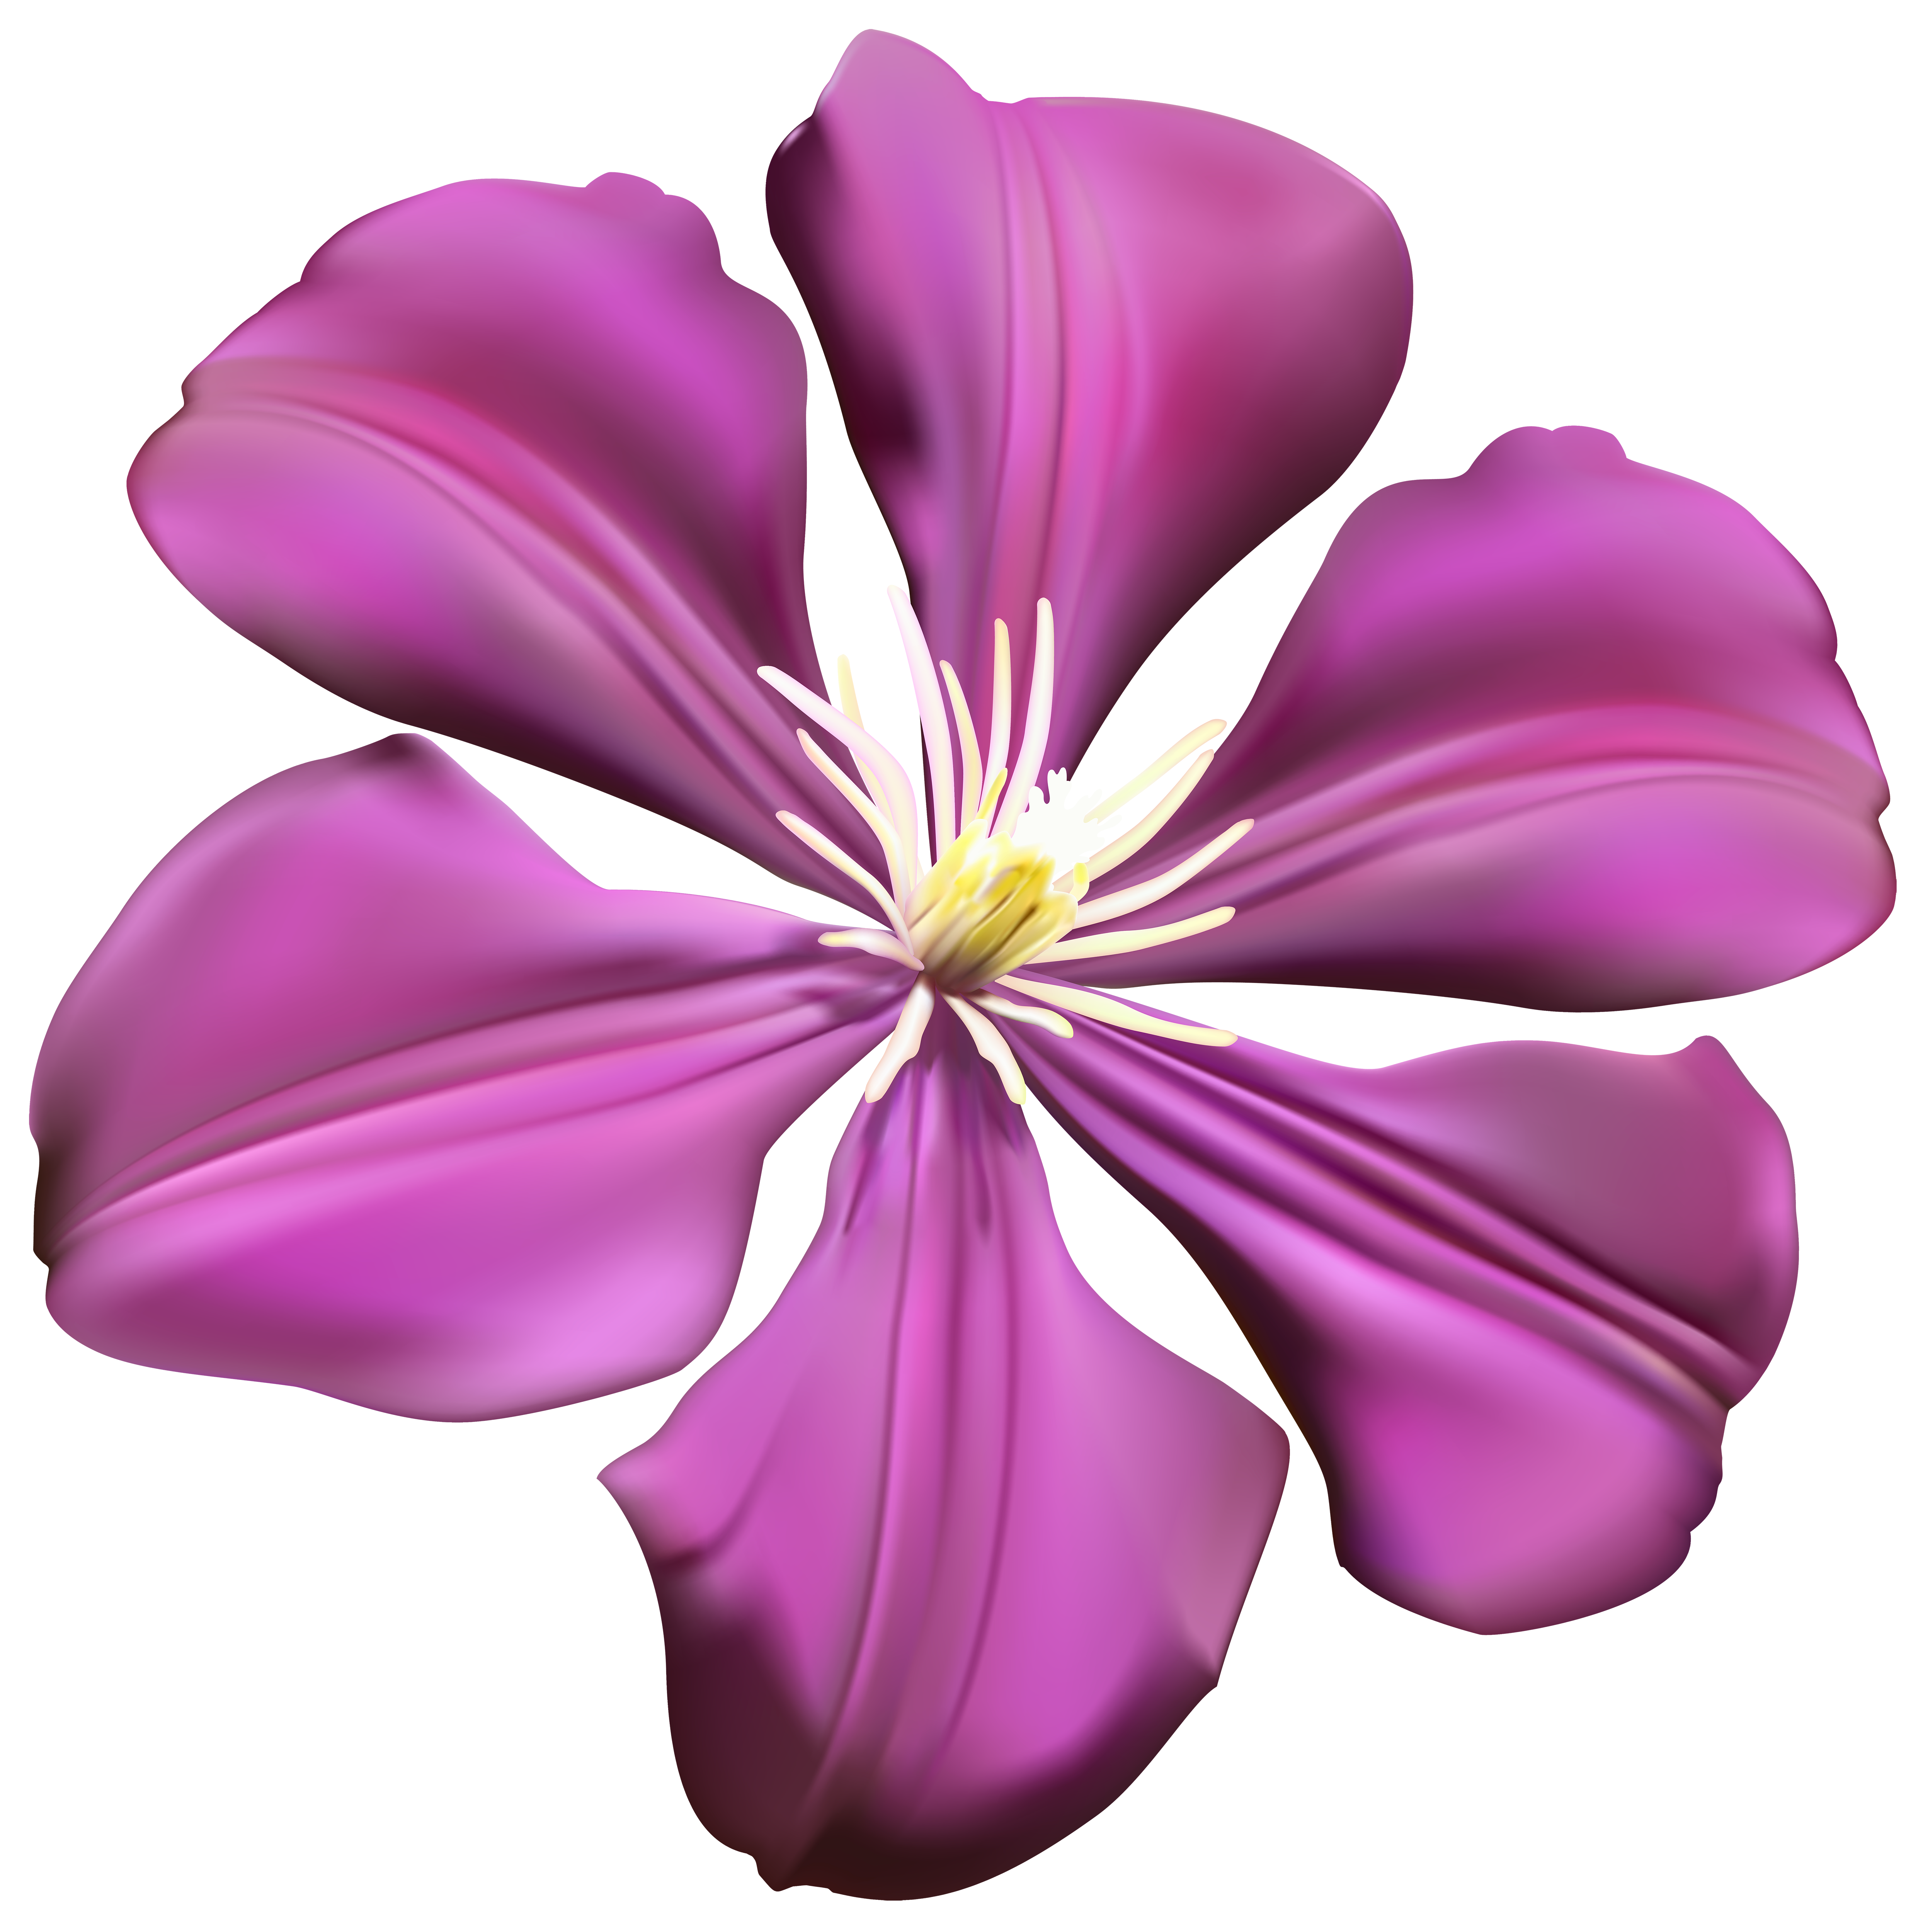 Purple flower png. Transparent clip art image